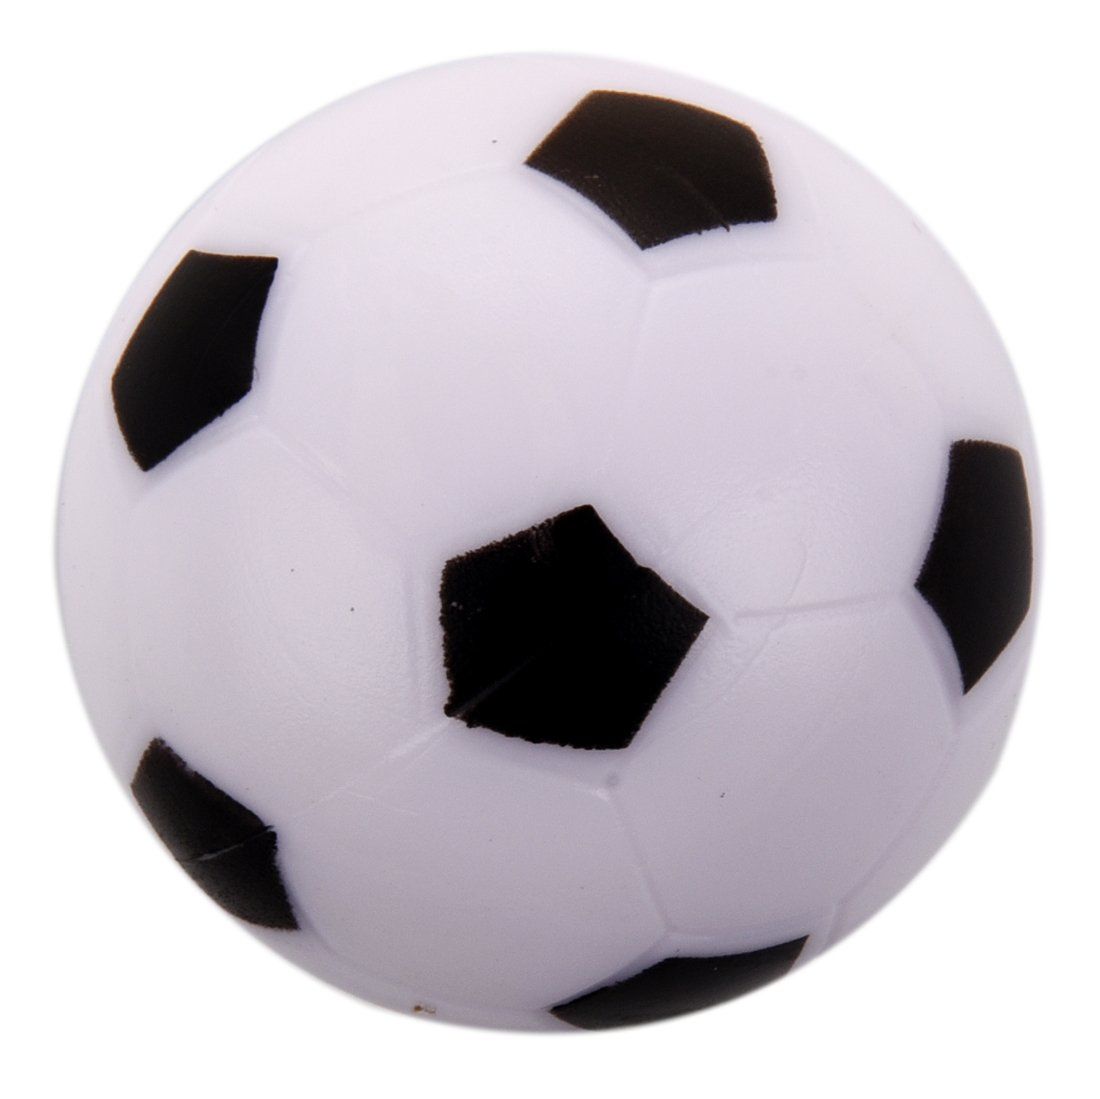 Globalflashdeal Small Soccer Foosball Table Ball Plastic Hard Homo logue Children Game Toy Black White